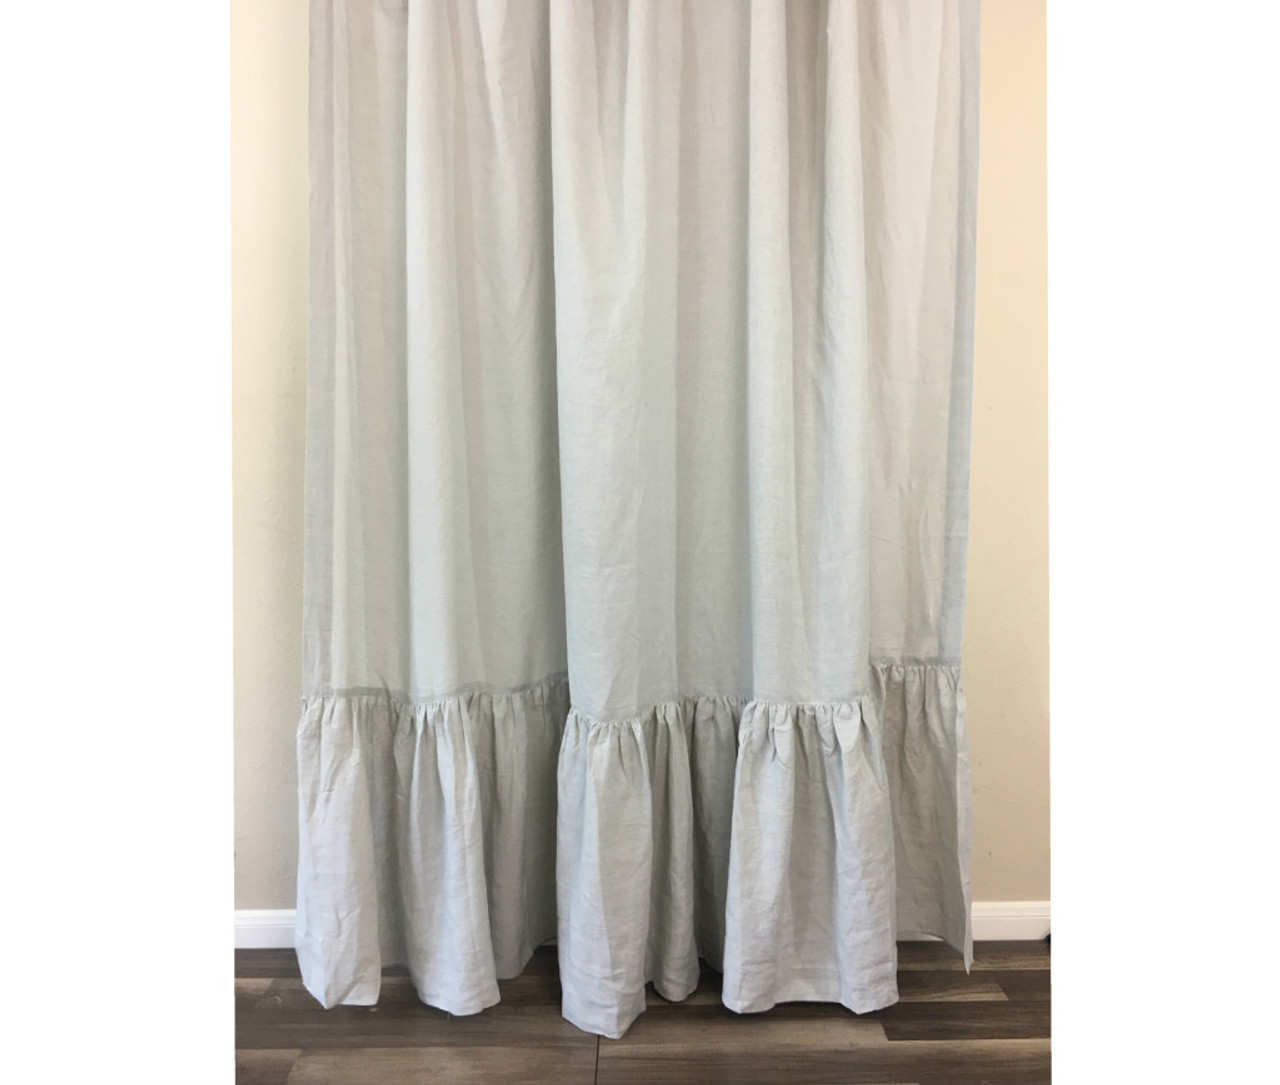 Stone Grey Linen Shower Curtain With Mermaid Long Ruffles 760981523479952c2imbypasson